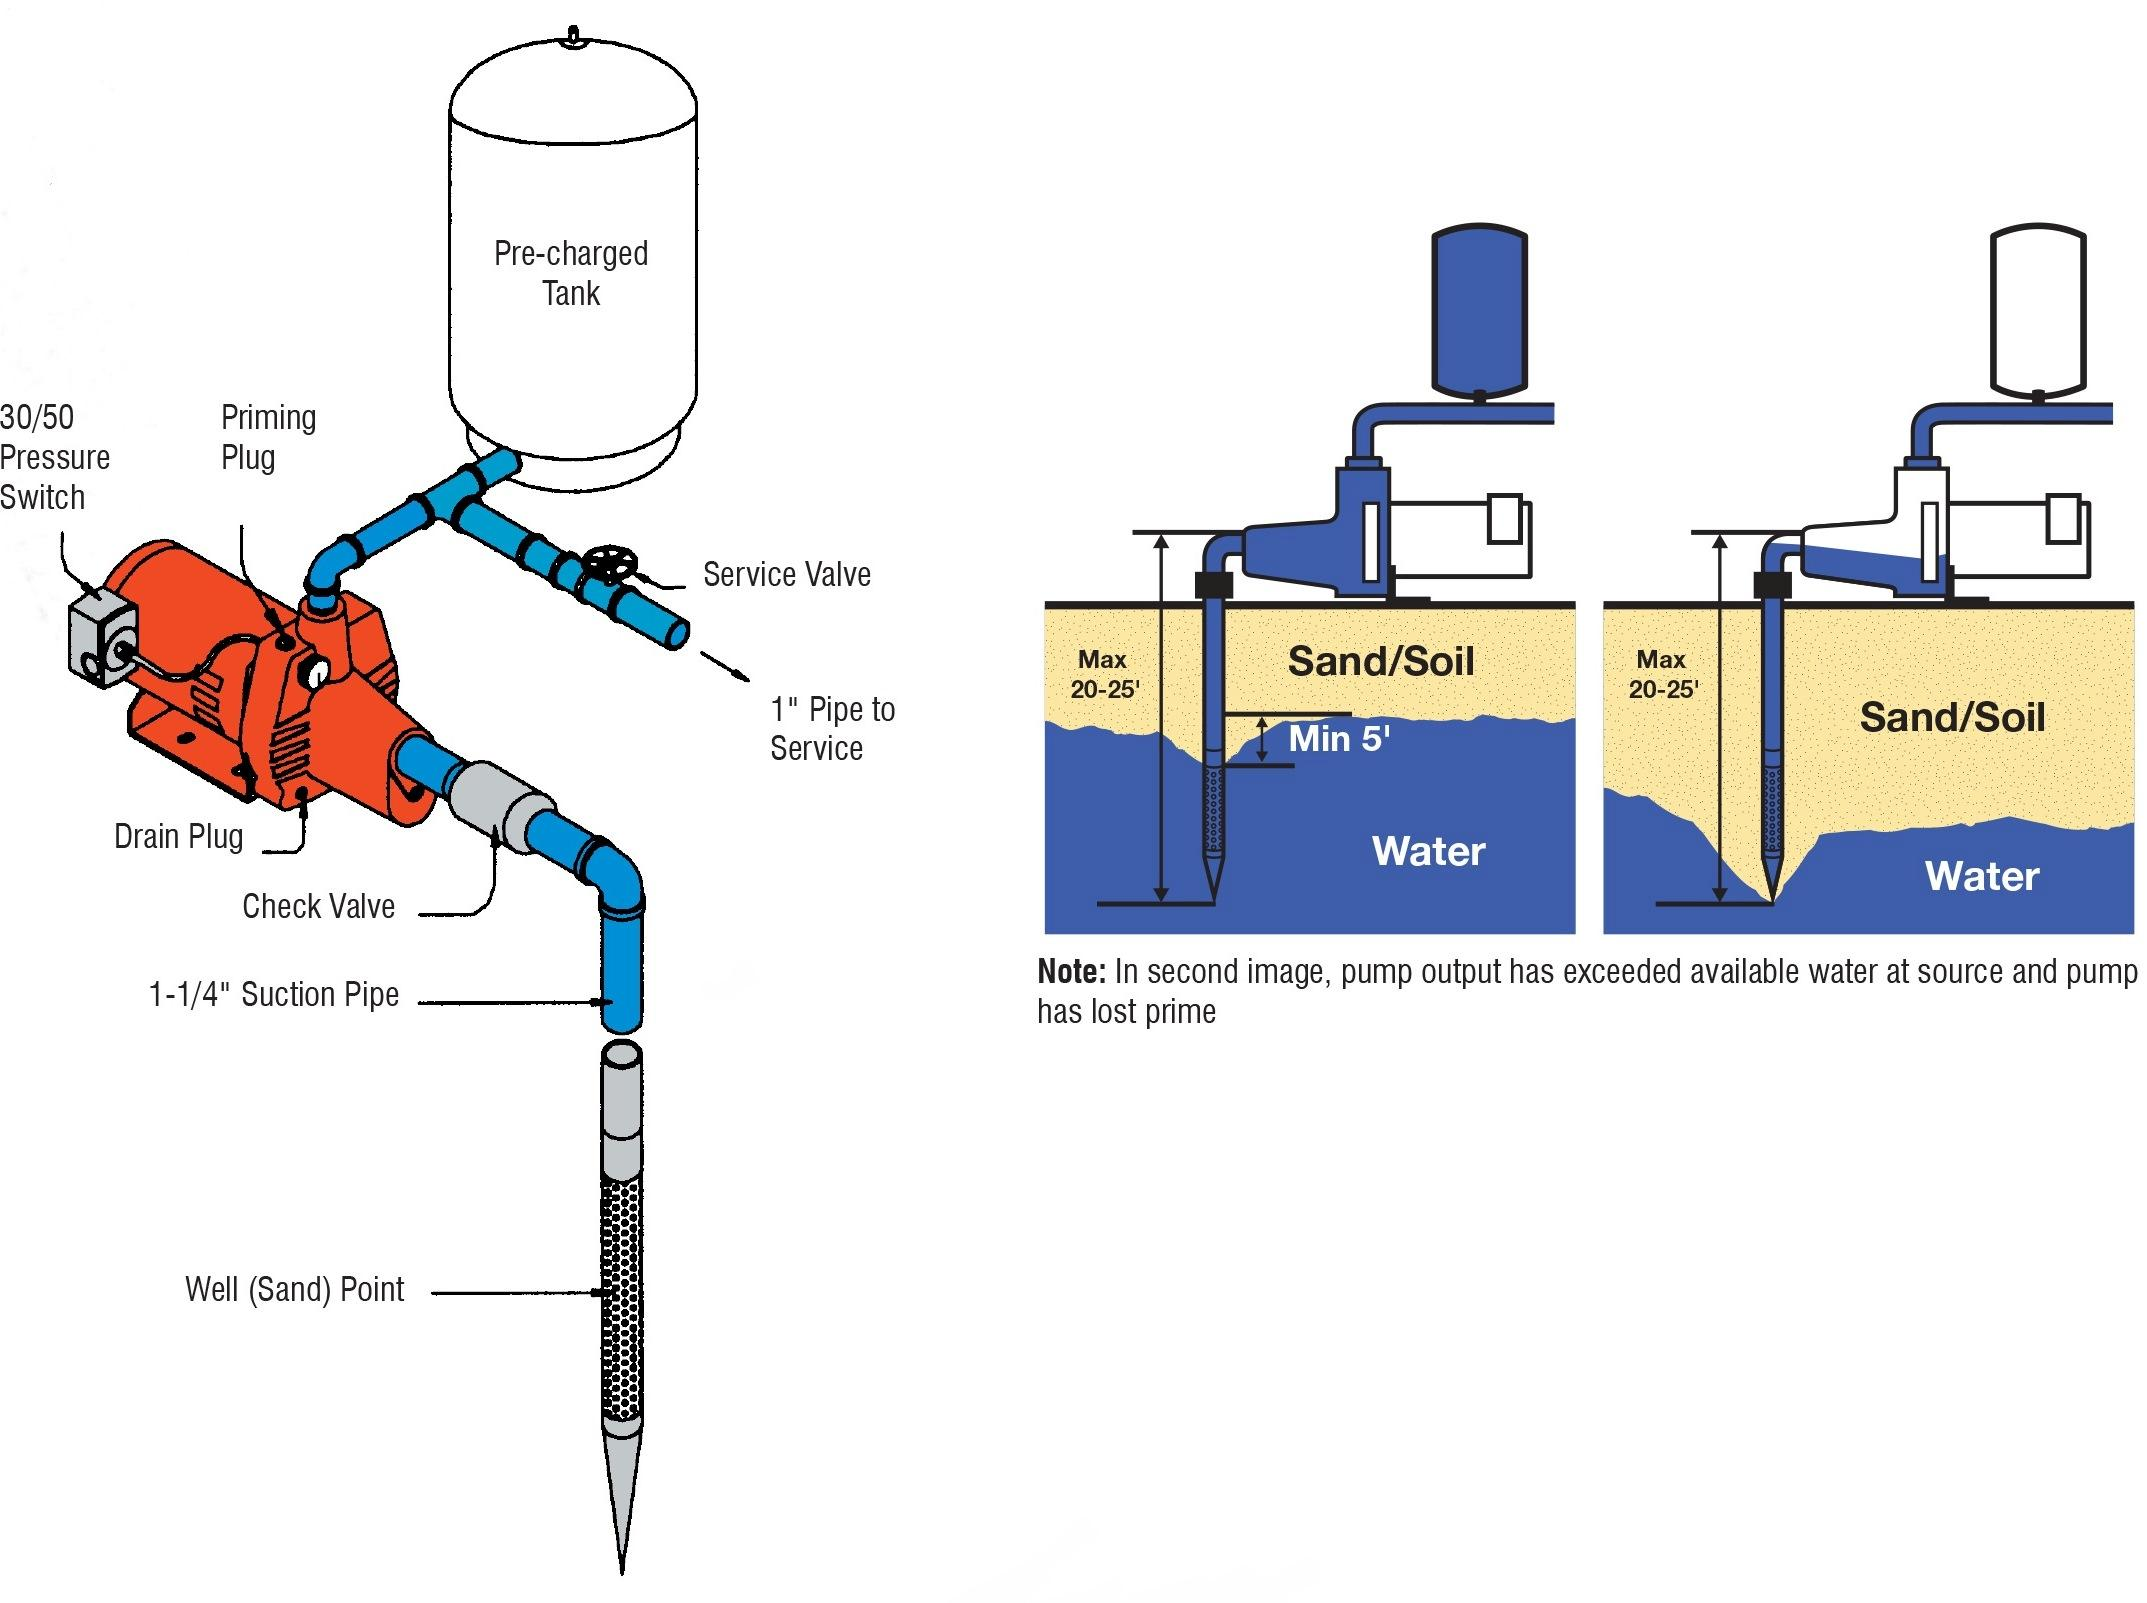 Wiring Diagram For Well Pump Pressure Switch from g-ecx.images-amazon.com